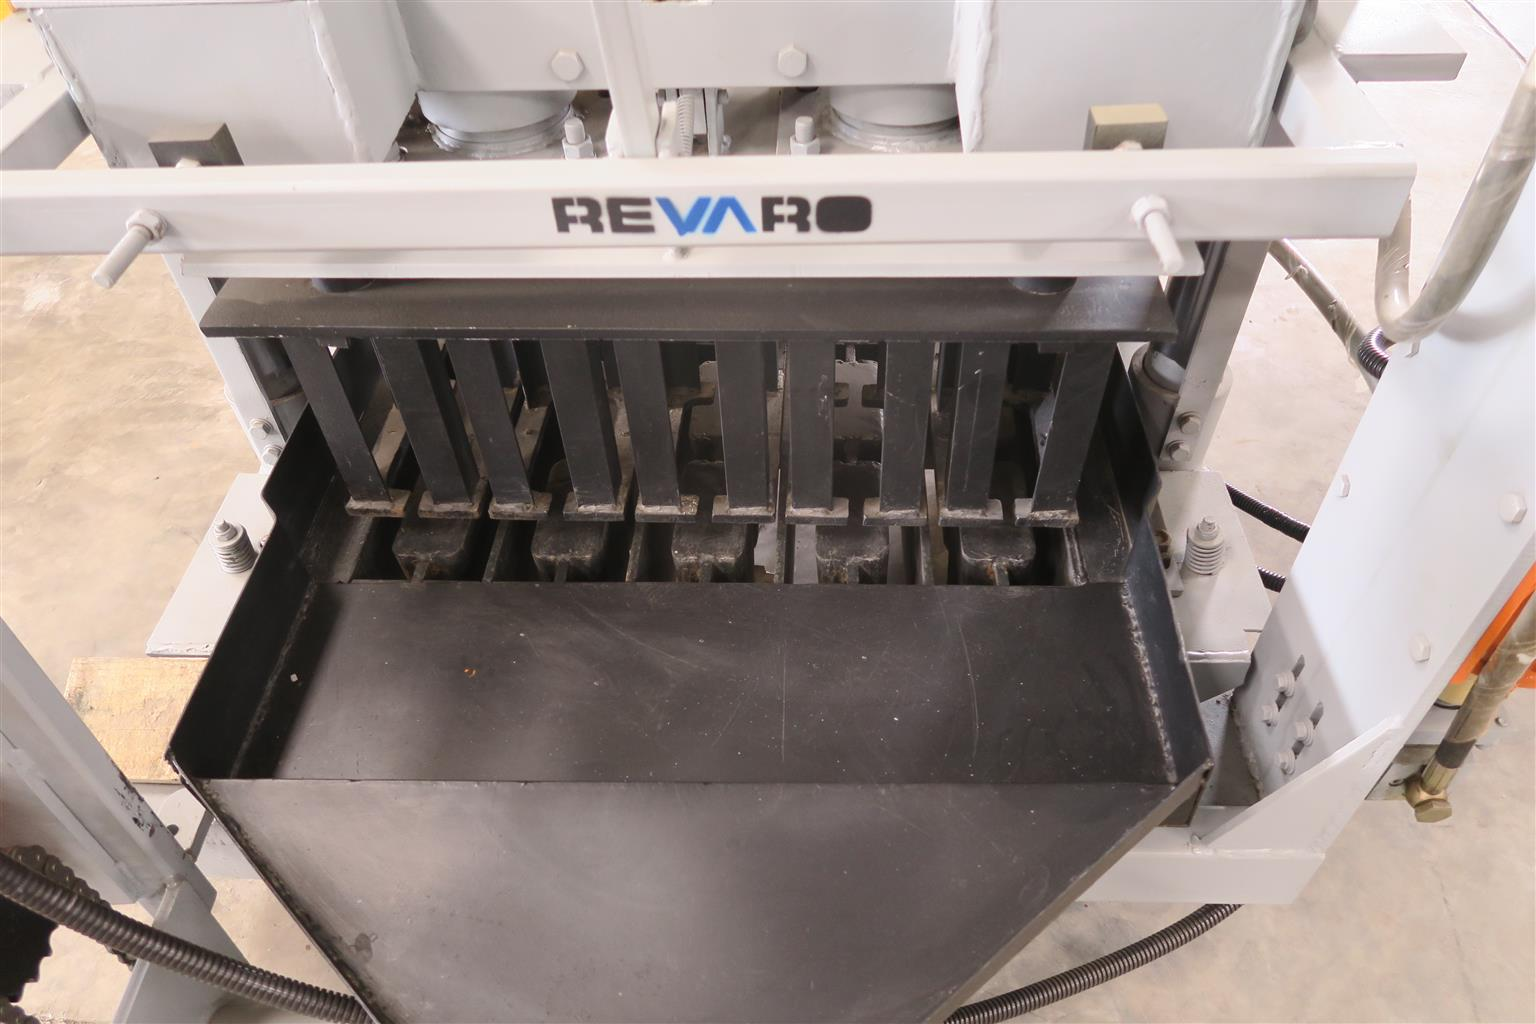 Revaro Egg layers and small static machines